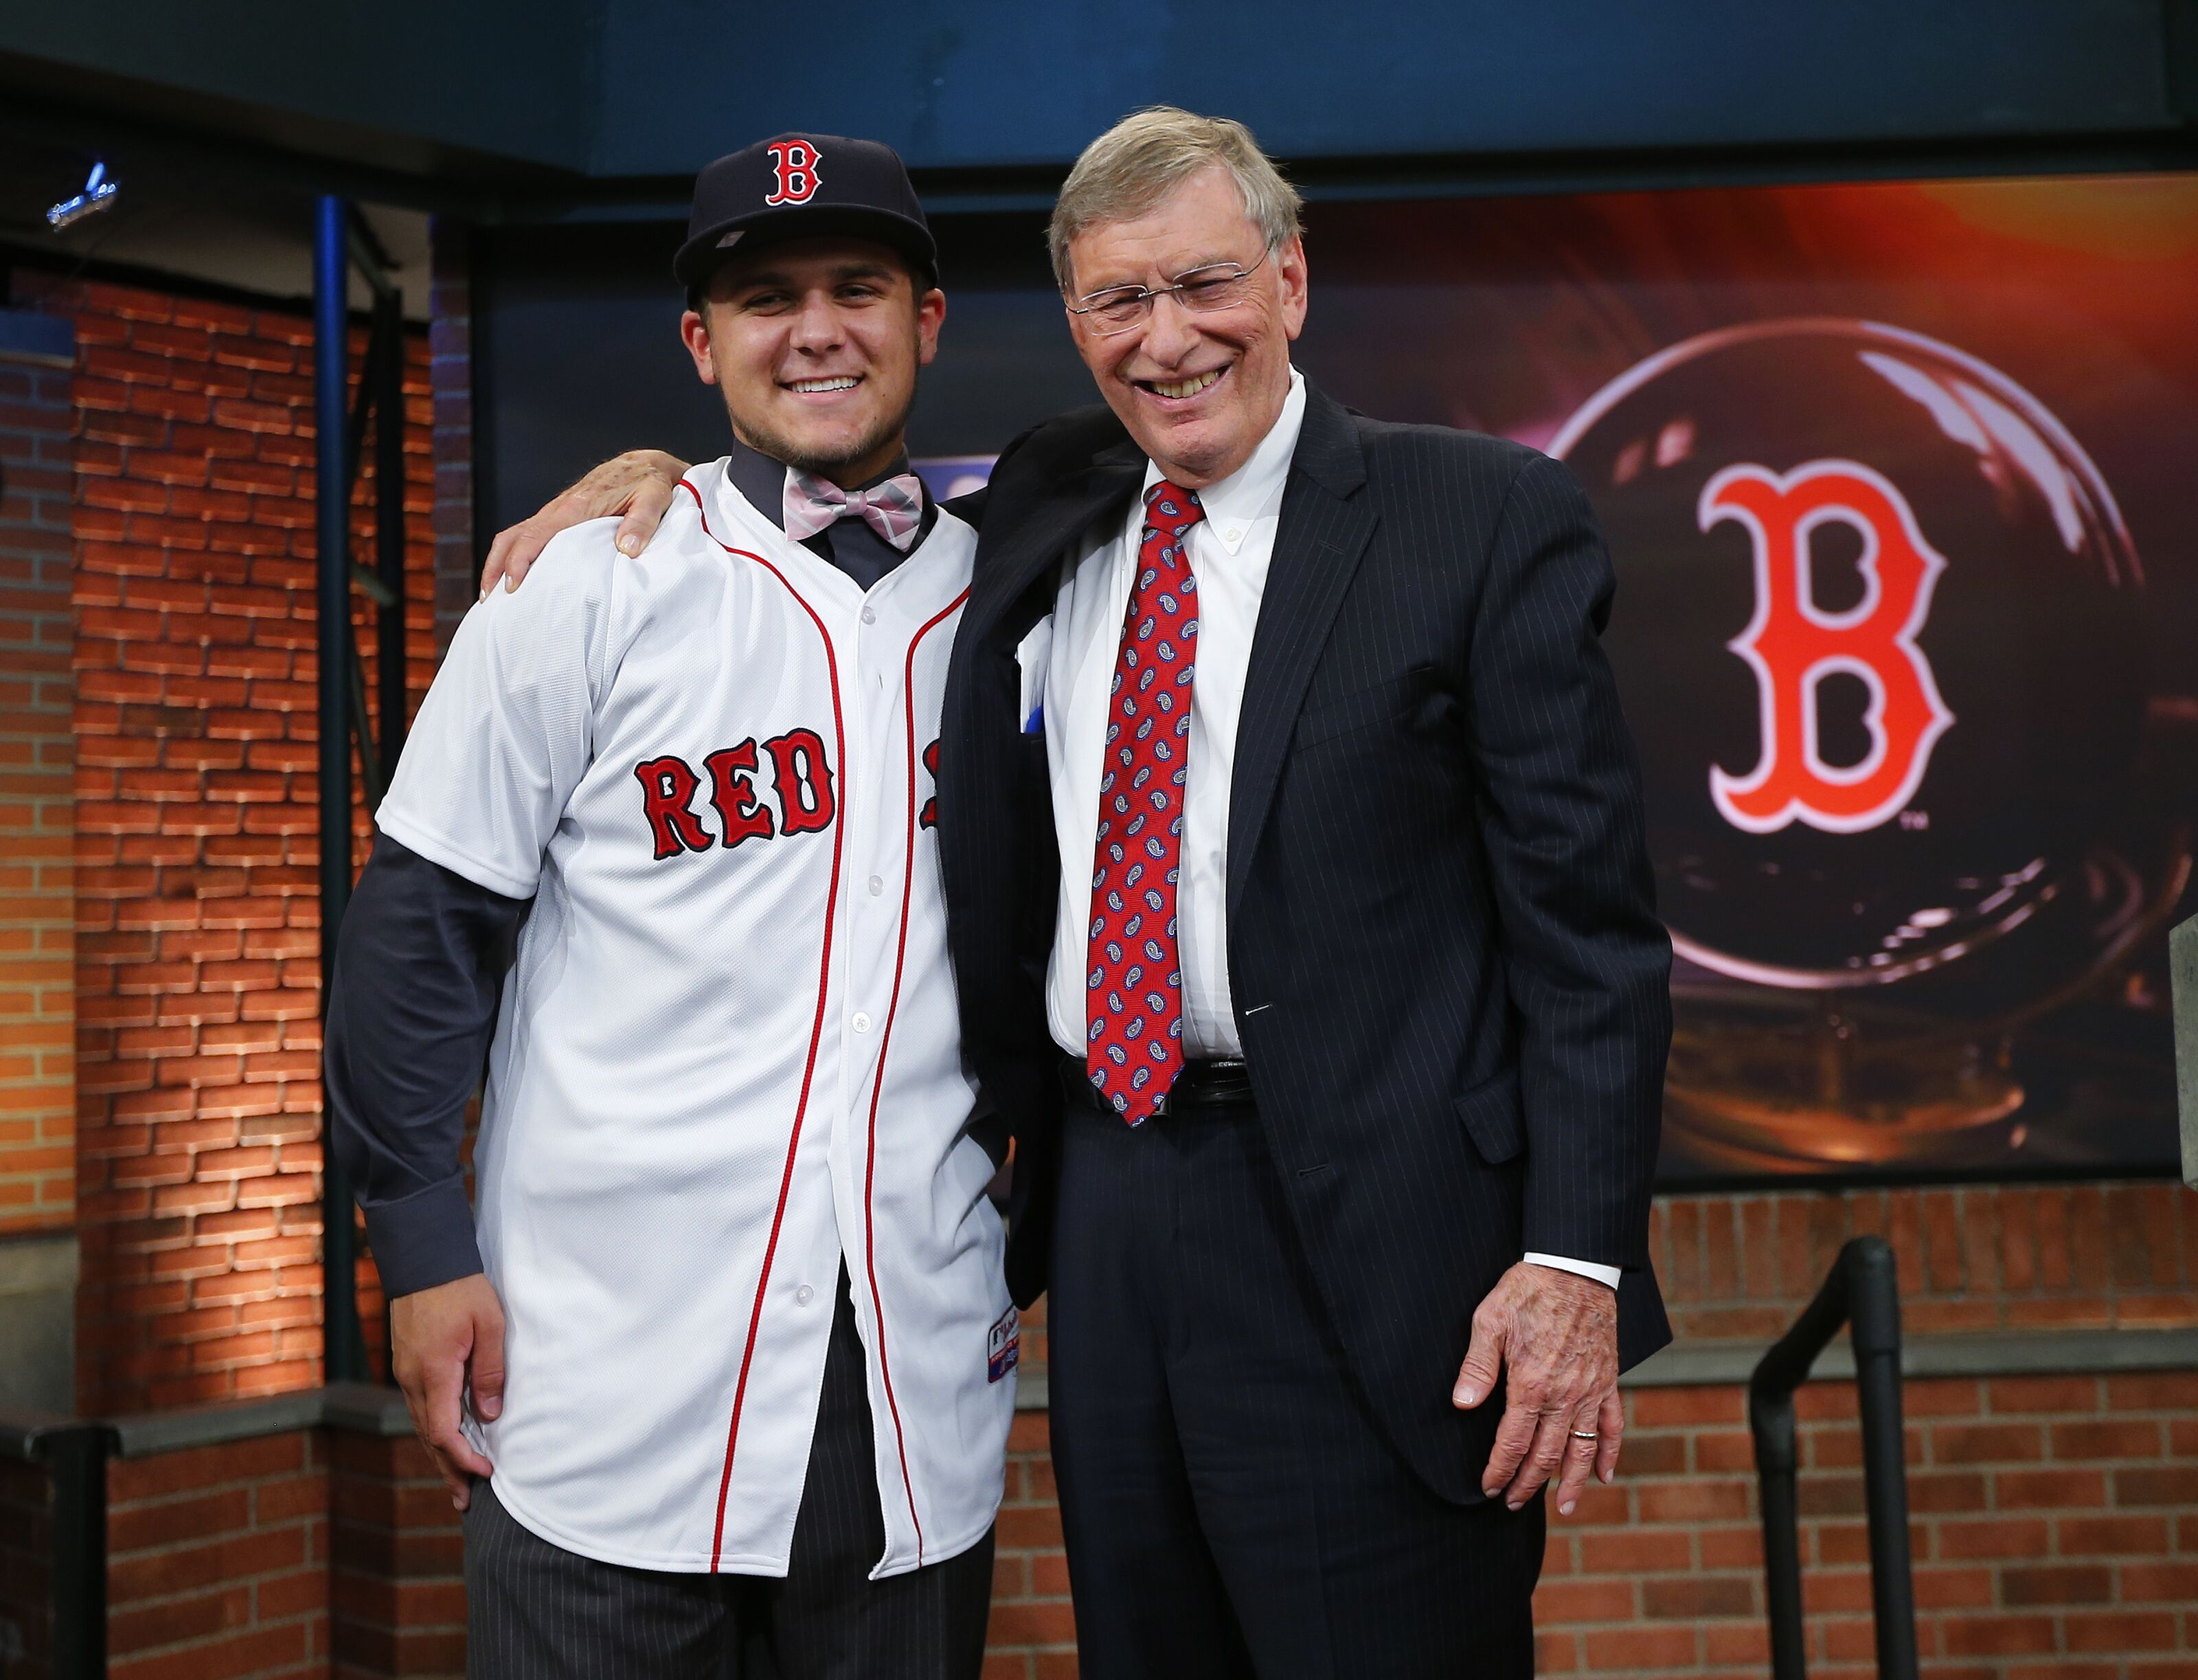 Boston Red Sox: Rookie of the Year candidates for the near future